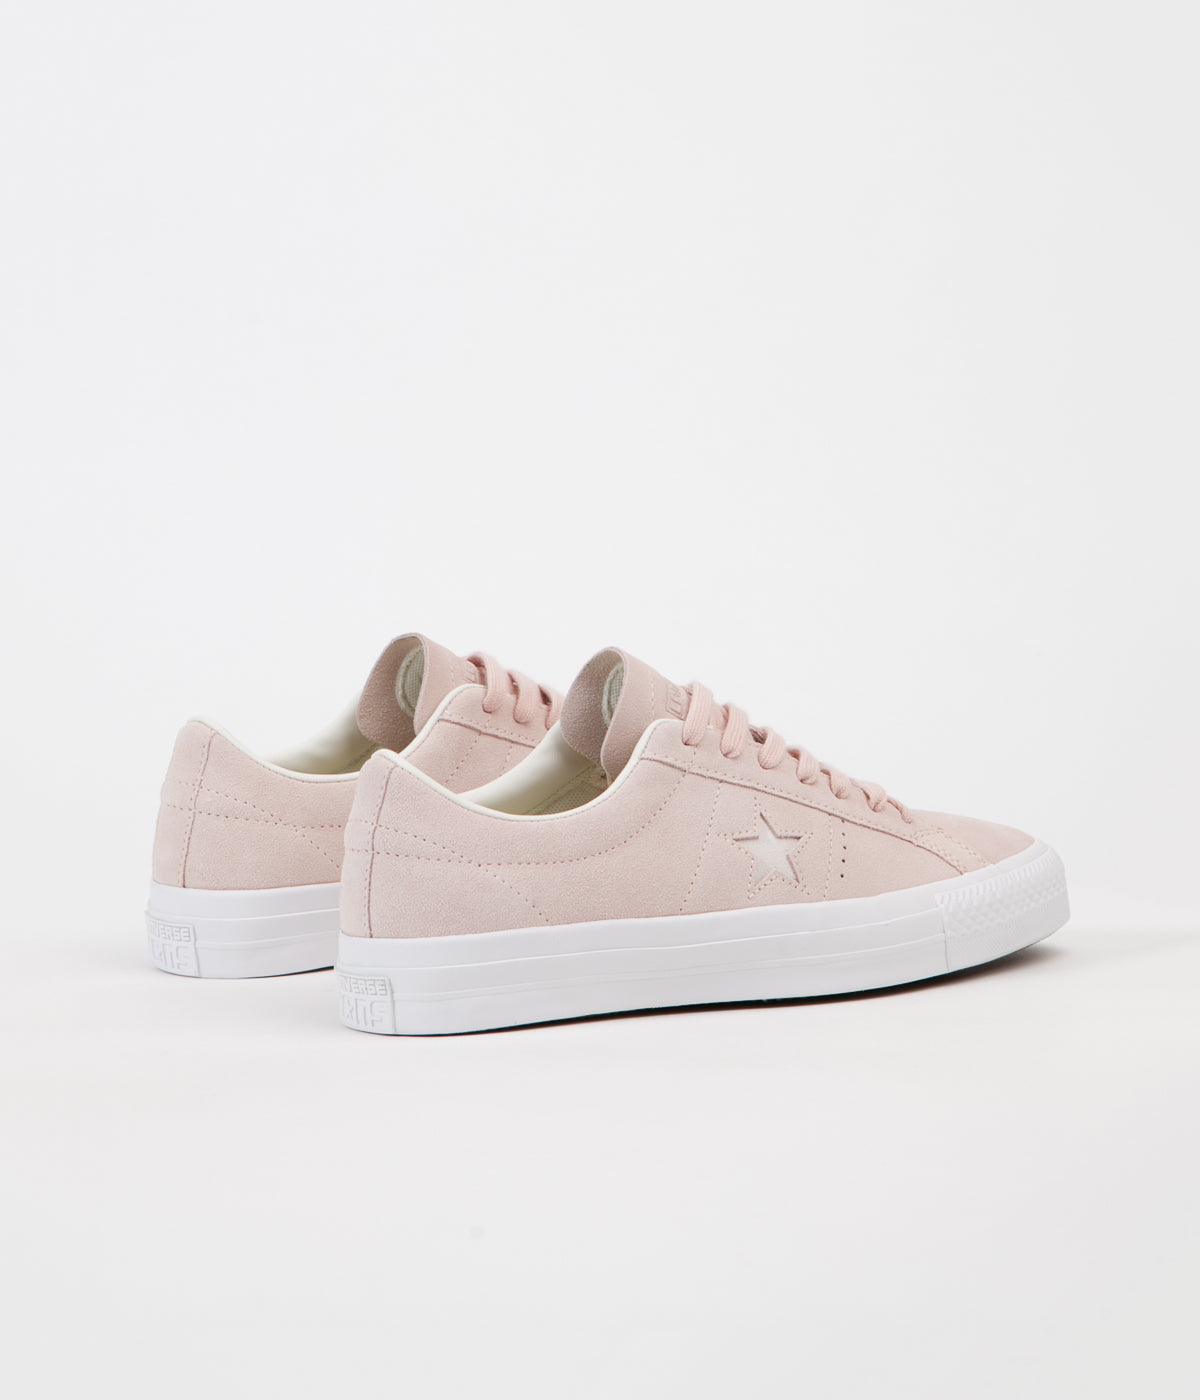 ae9822f92b3841 ... Converse One Star Pro Ox Shoes - Dusk Pink   Egret   White ...